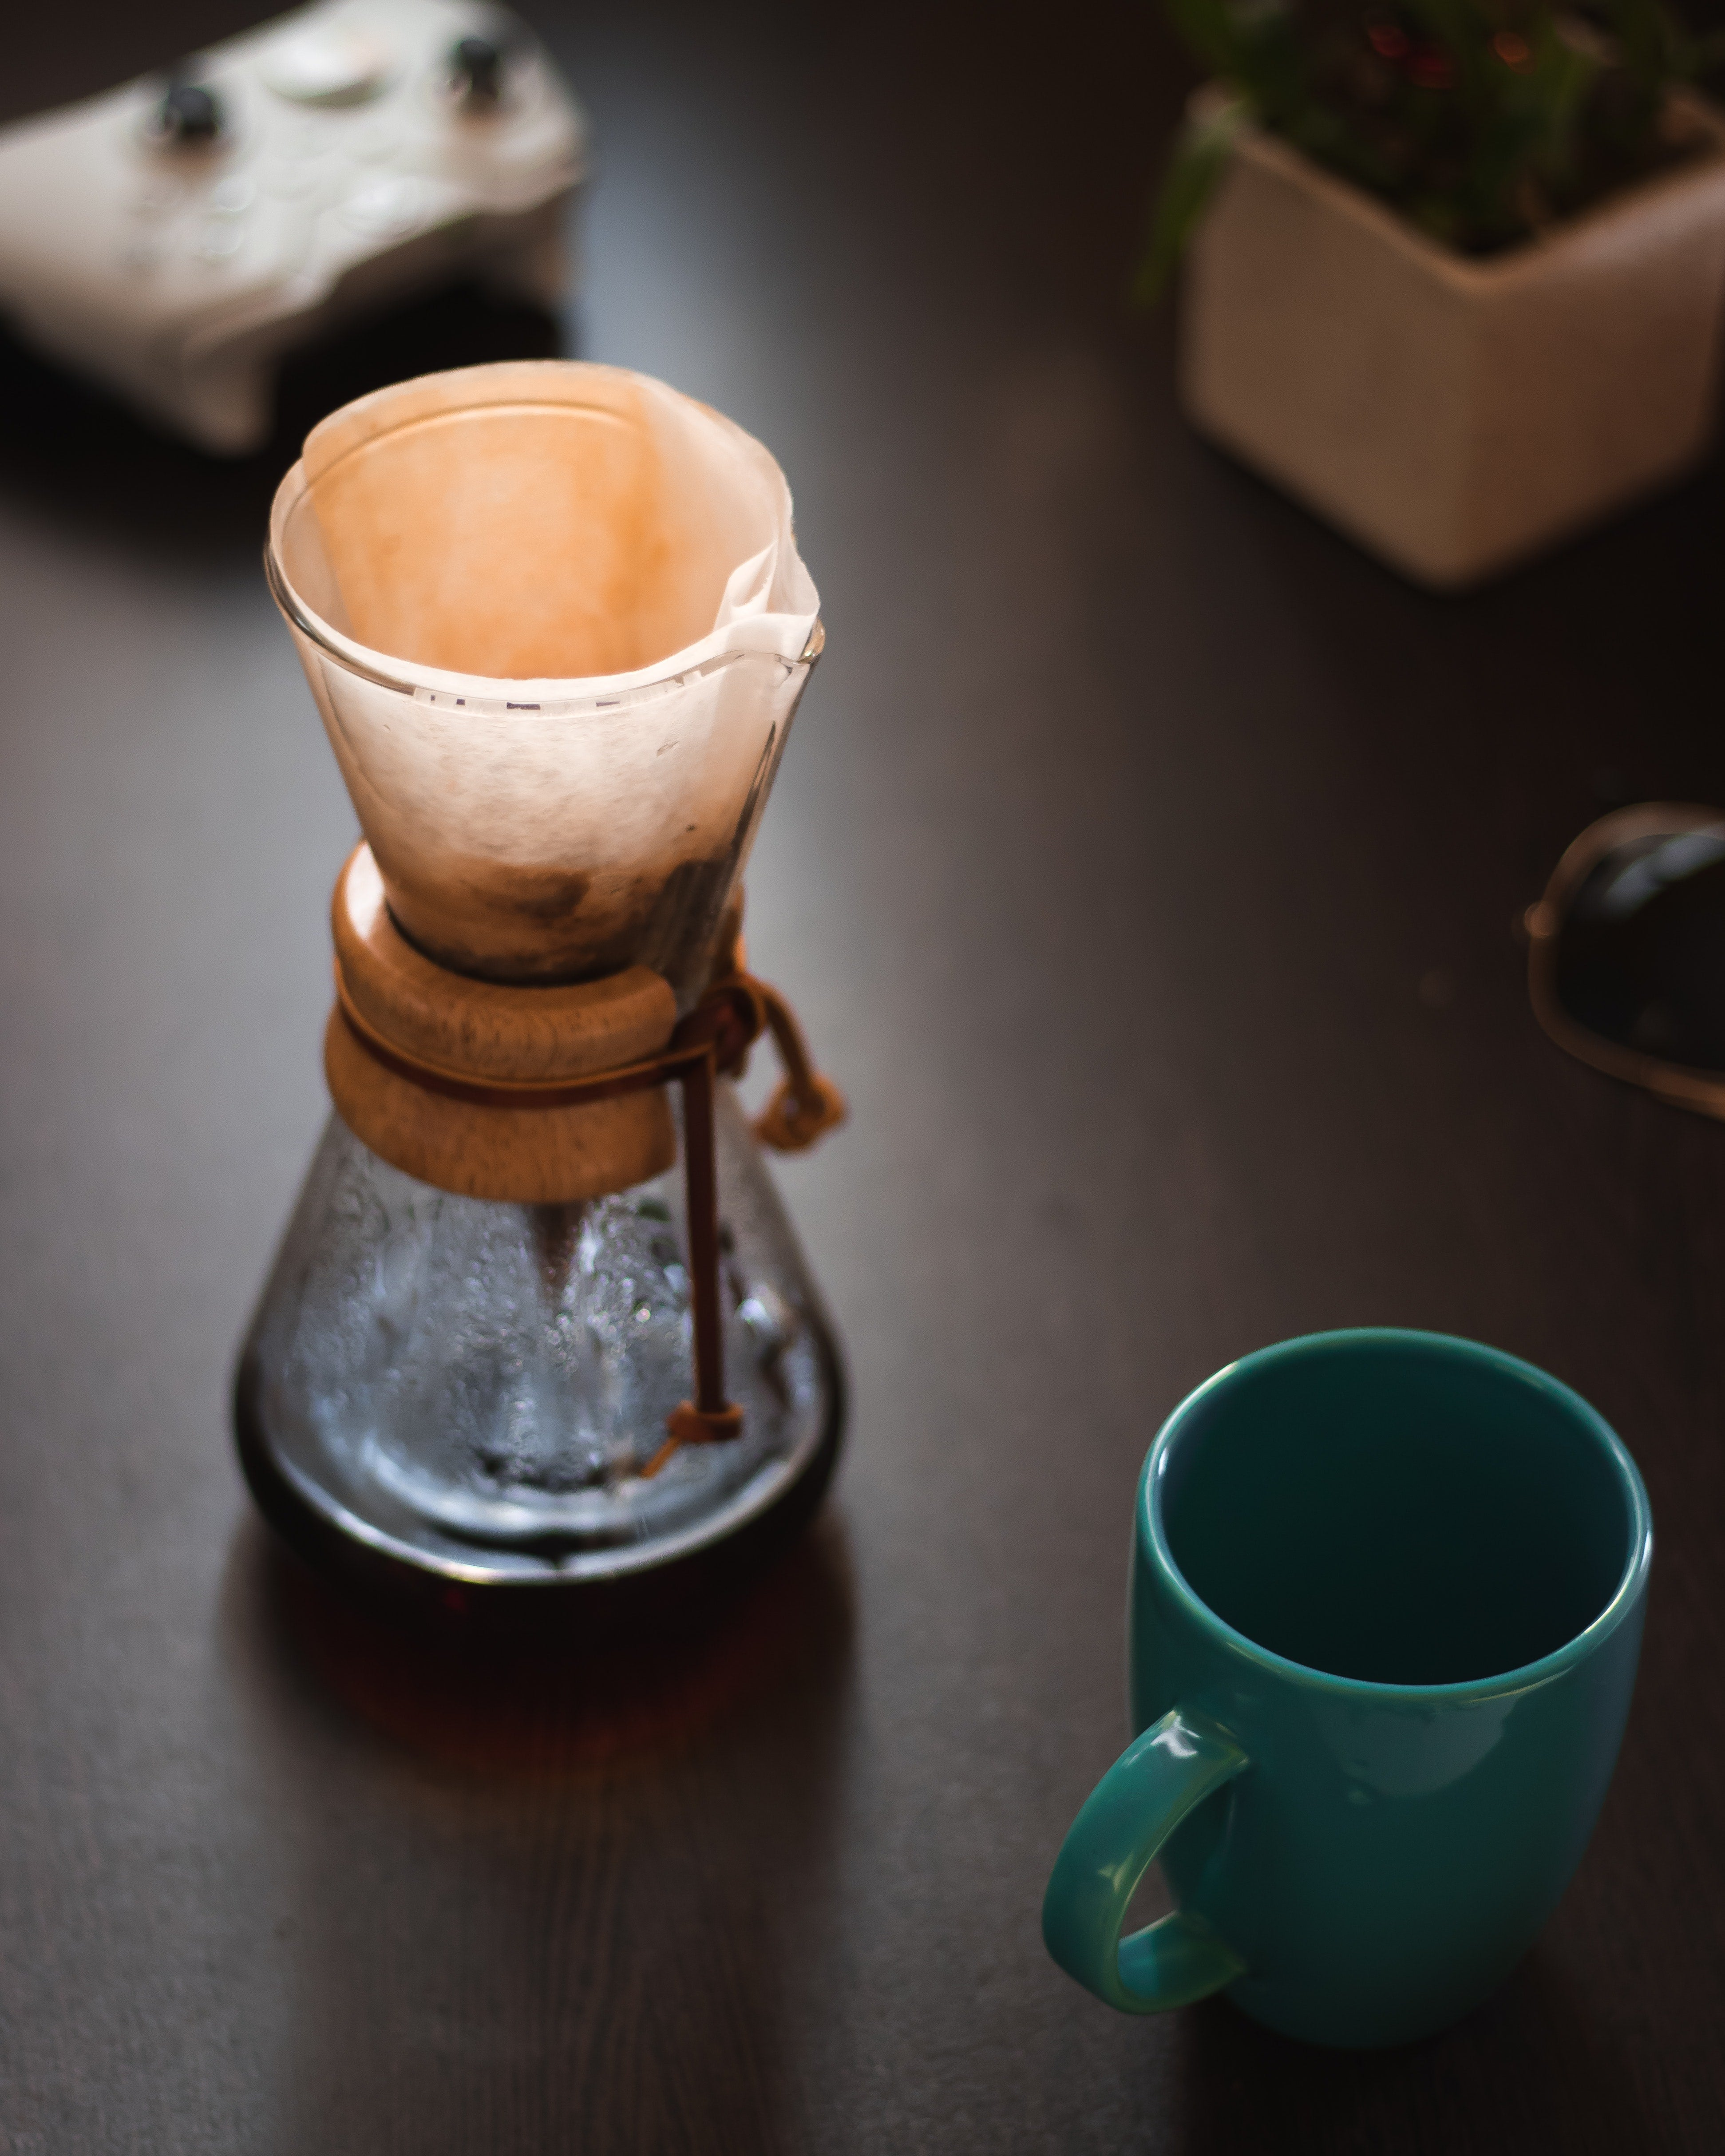 How to make coffee without a coffee filter